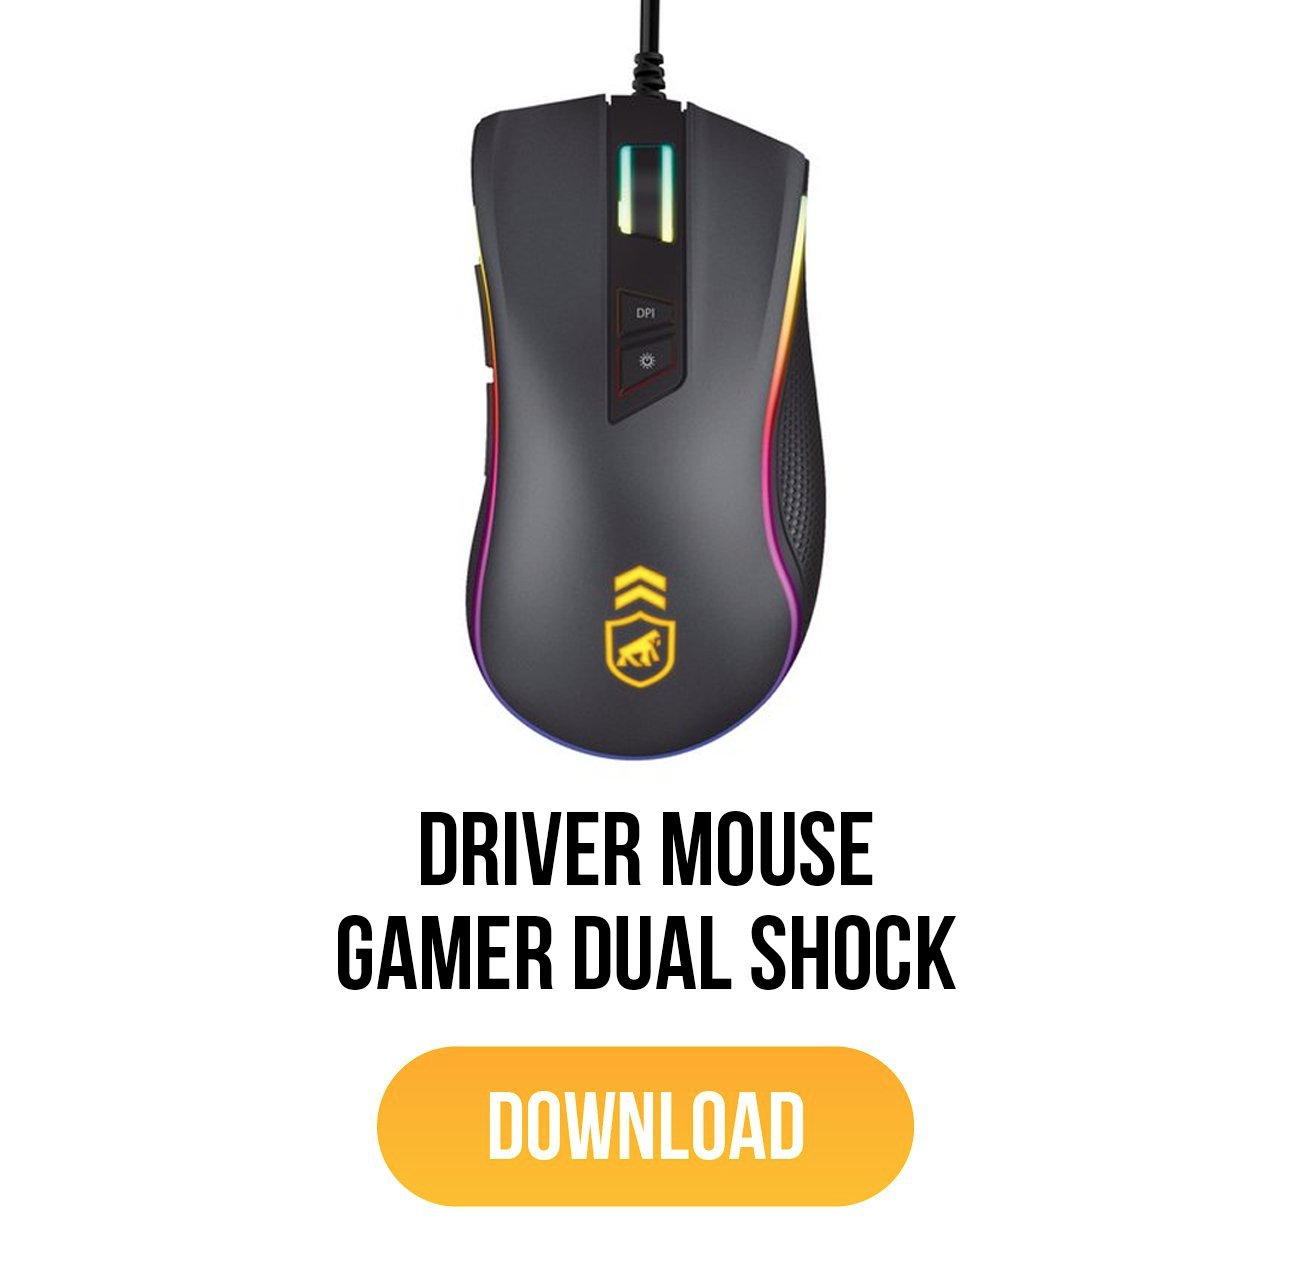 driver mouse gamer dual shock